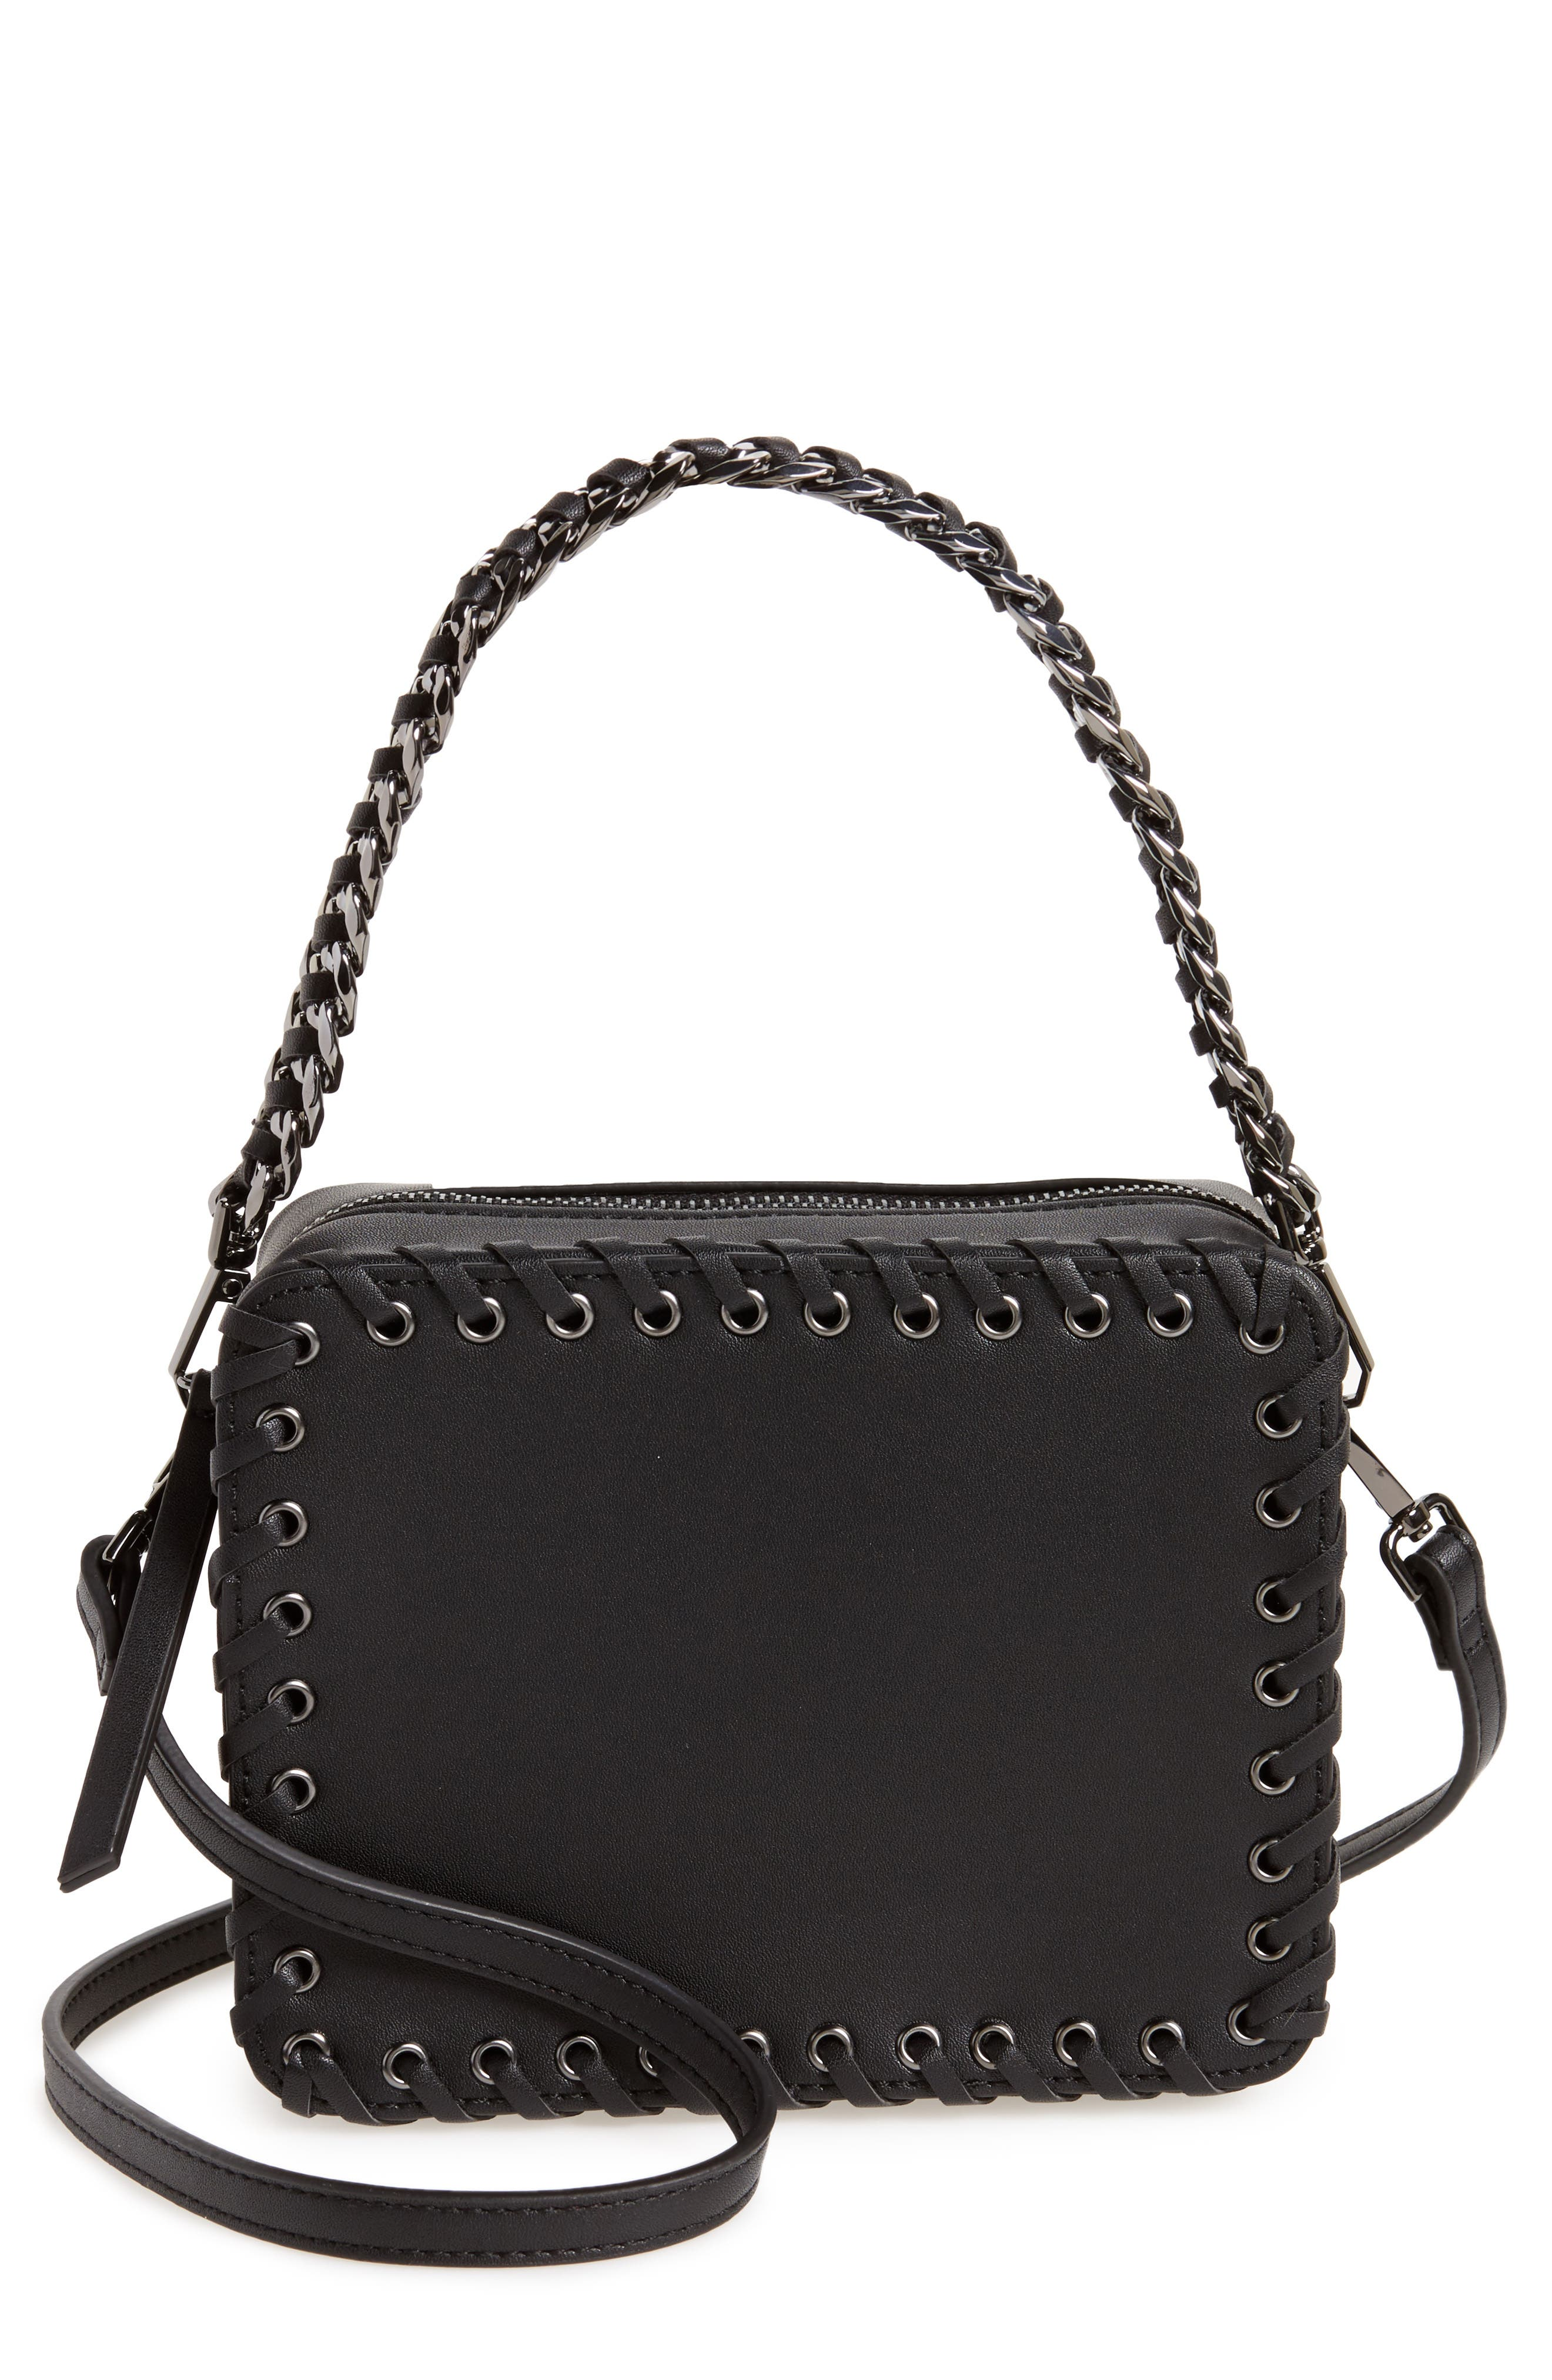 Alternate Image 1 Selected - Topshop Rogue Whipstitch Faux Leather Crossbody Bag